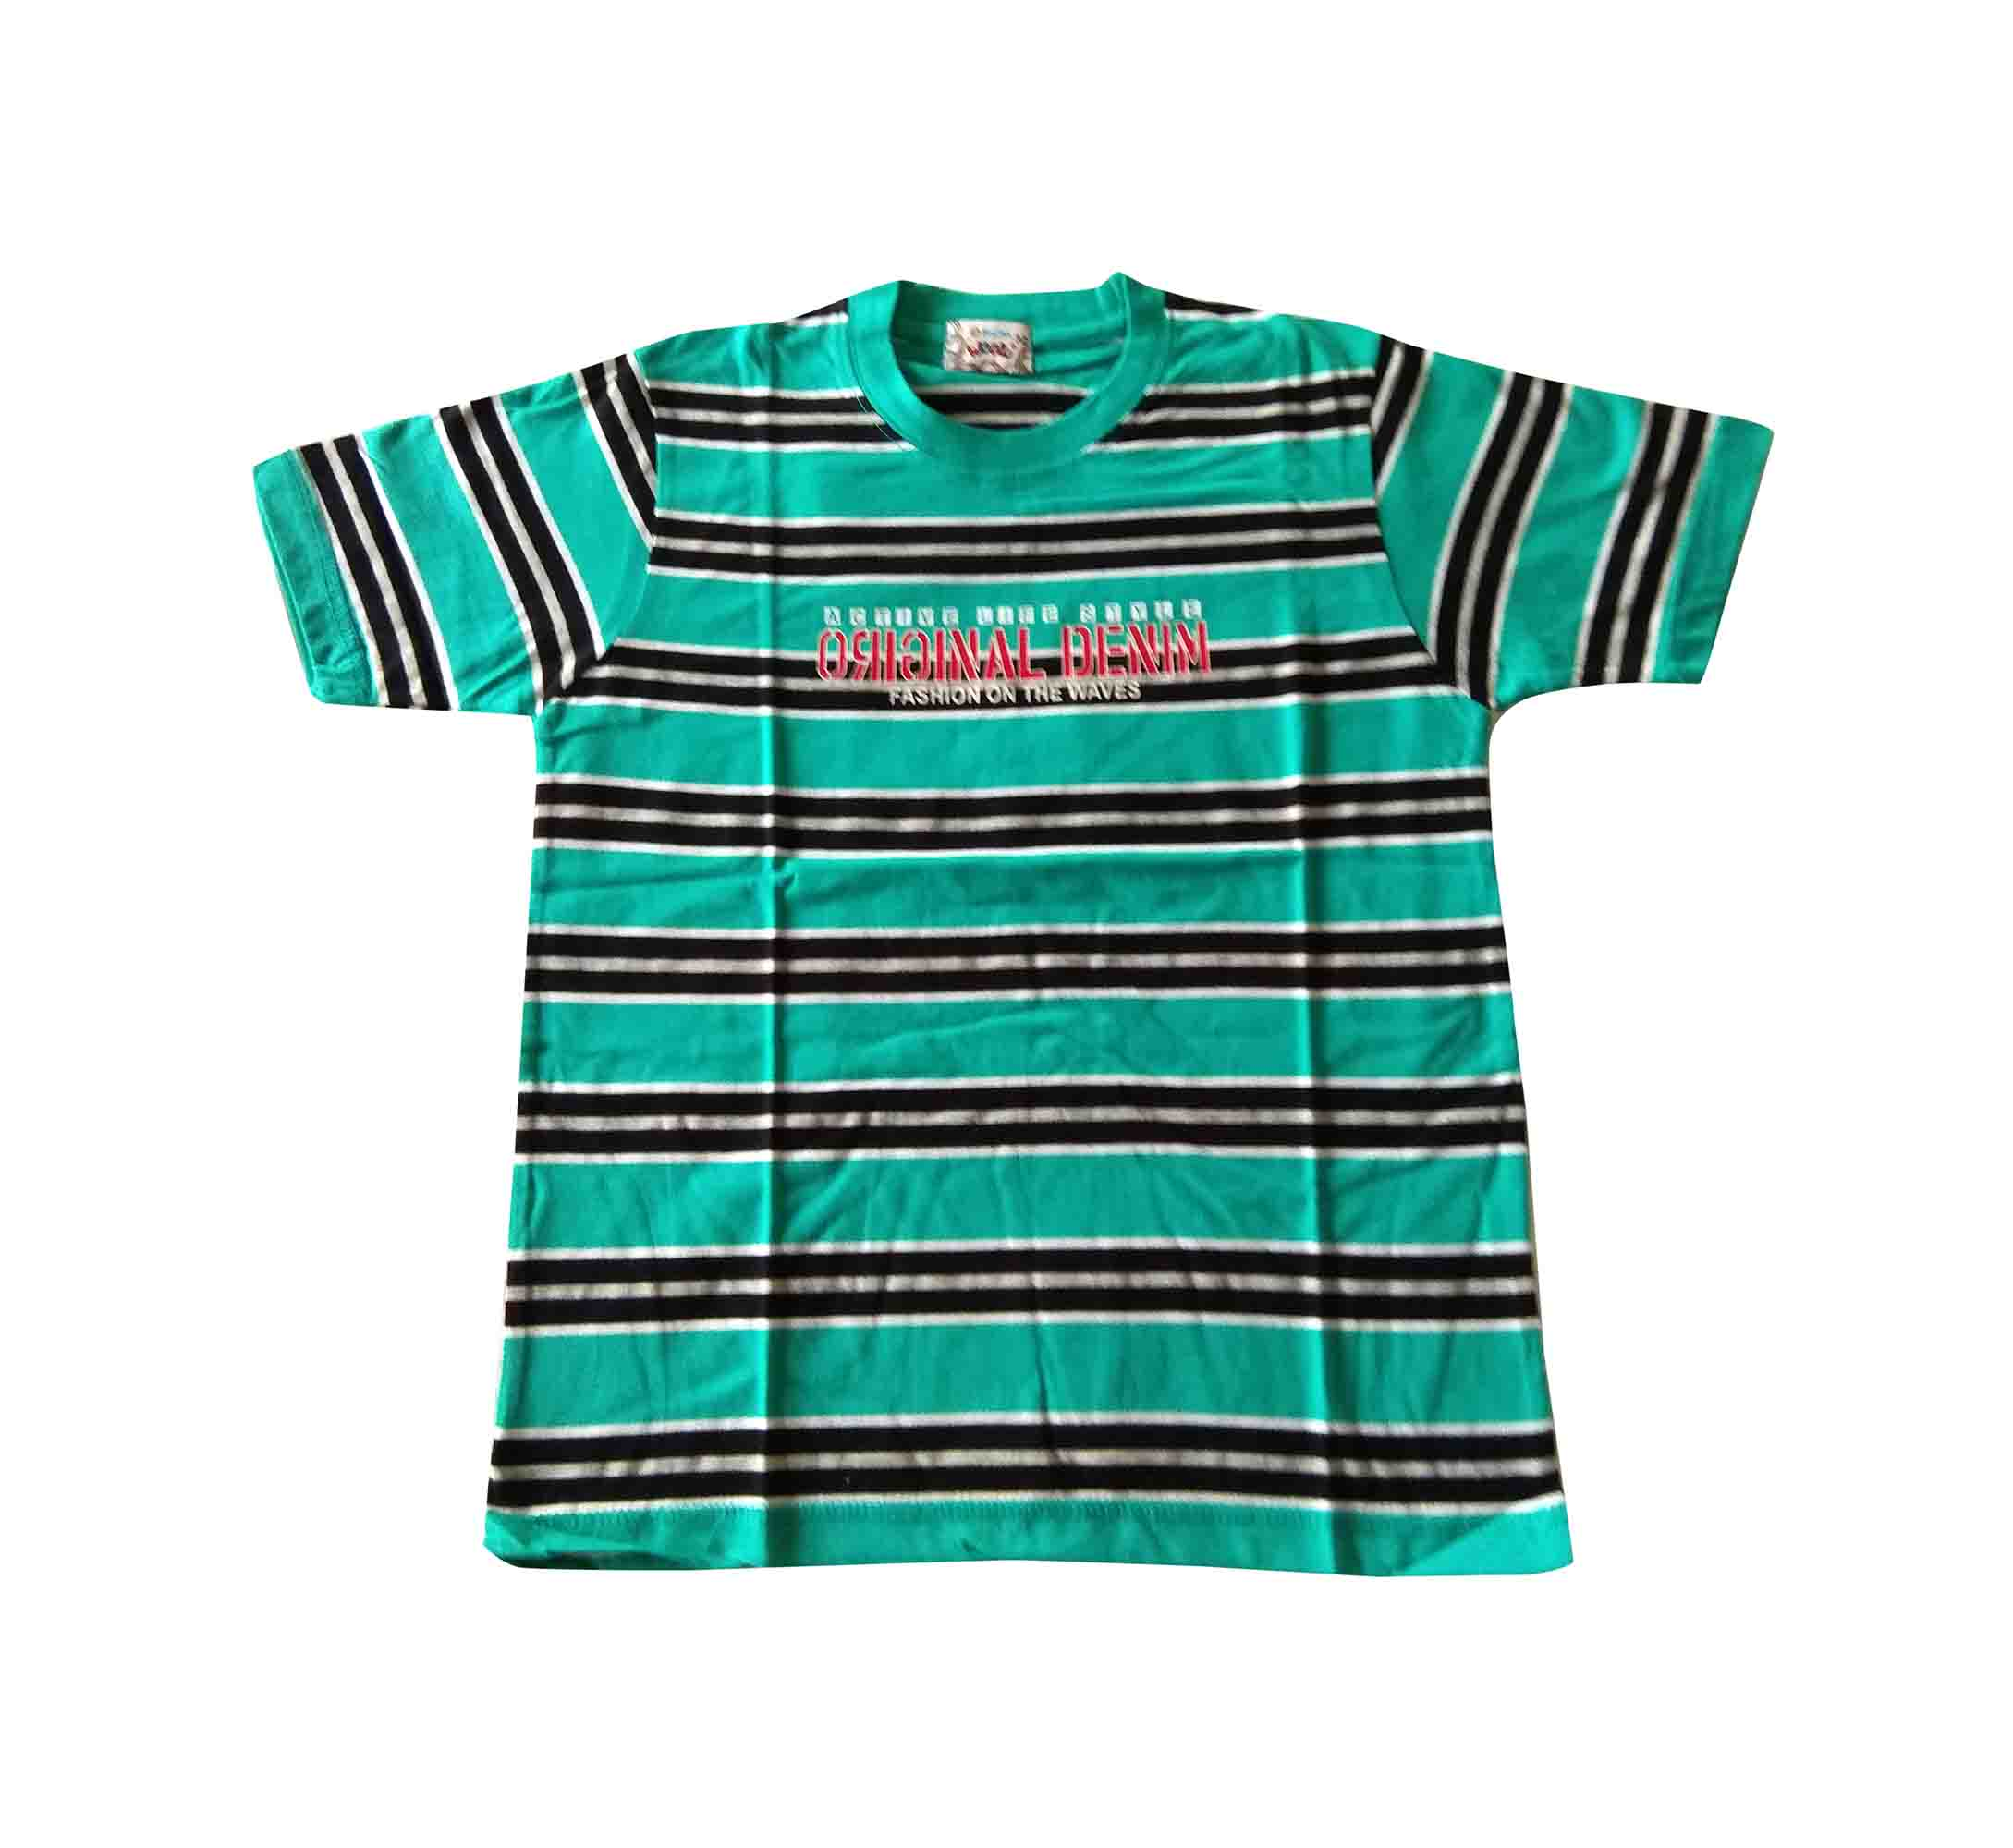 KT JUNE ORIGINAL DENIM-SEA GREEN KIDS T SHIRT